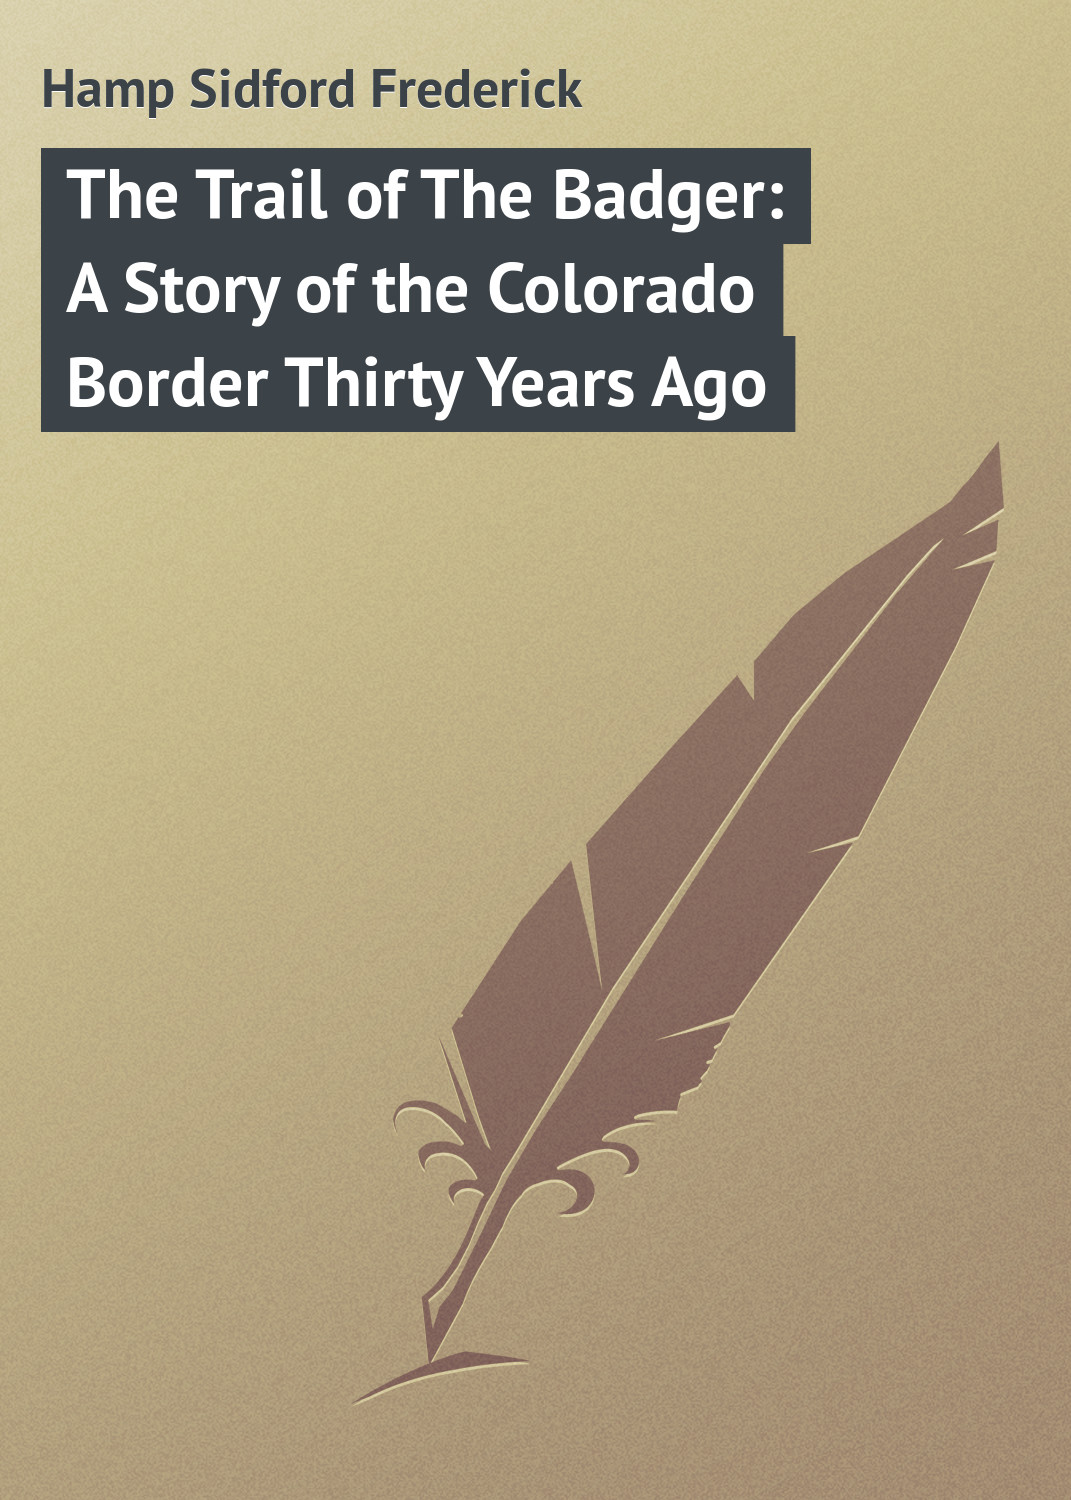 Hamp Sidford Frederick The Trail of The Badger: A Story of the Colorado Border Thirty Years Ago neil williamson elaine gallagher cameron johnston thirty years of rain